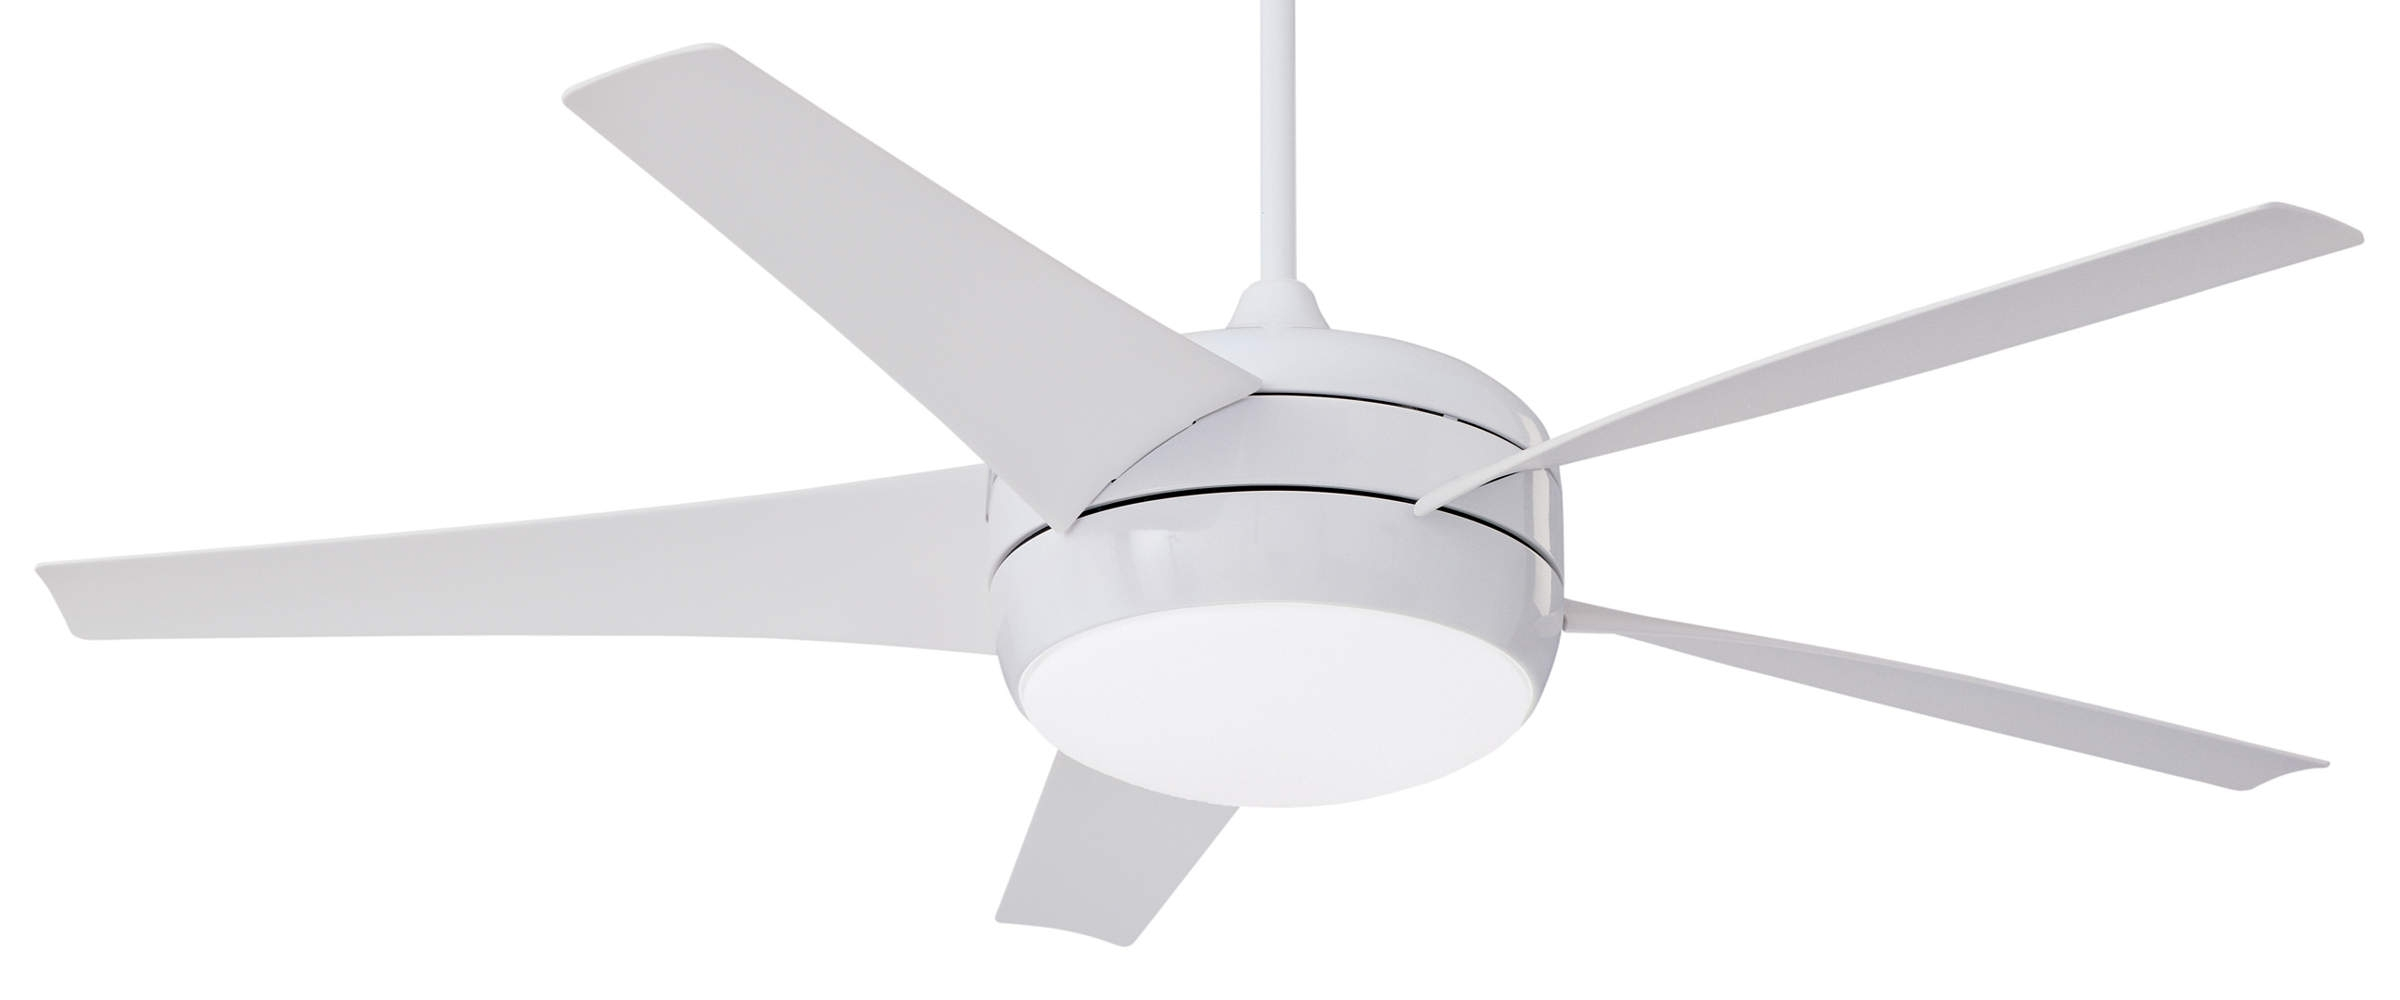 Preferred Emerson Midway Eco Dc Motor Ceiling Fan Cfww In Gloss White With With Regard To Emerson Outdoor Ceiling Fans With Lights (View 14 of 20)